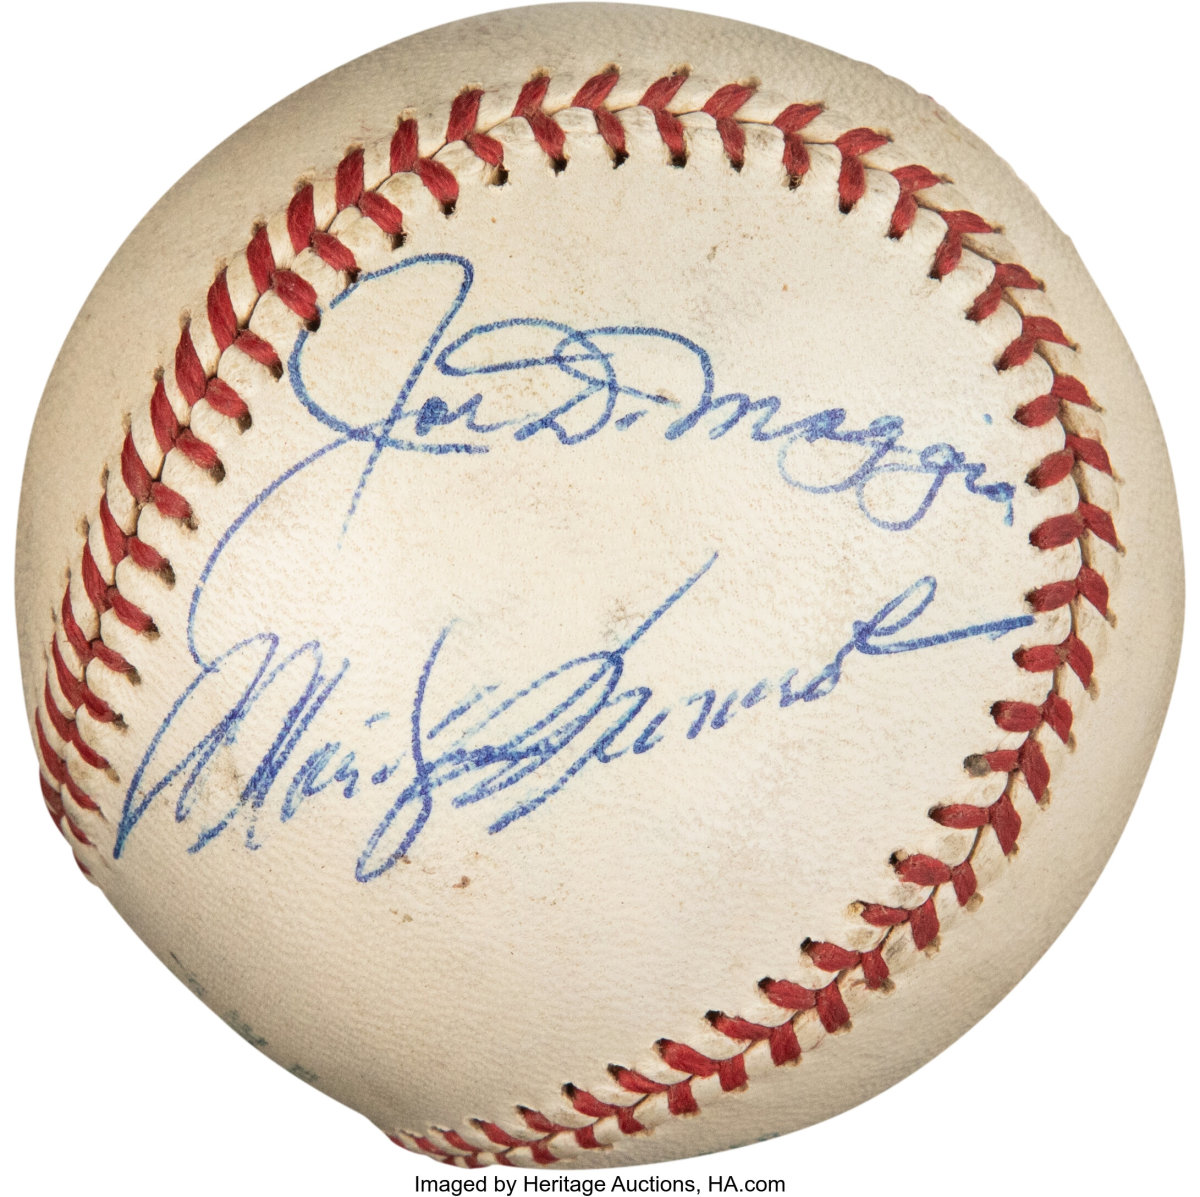 This dual-signed ball from Joe DiMaggio and Marilyn Monroe sold for $384,000 at Heritage Auctions.